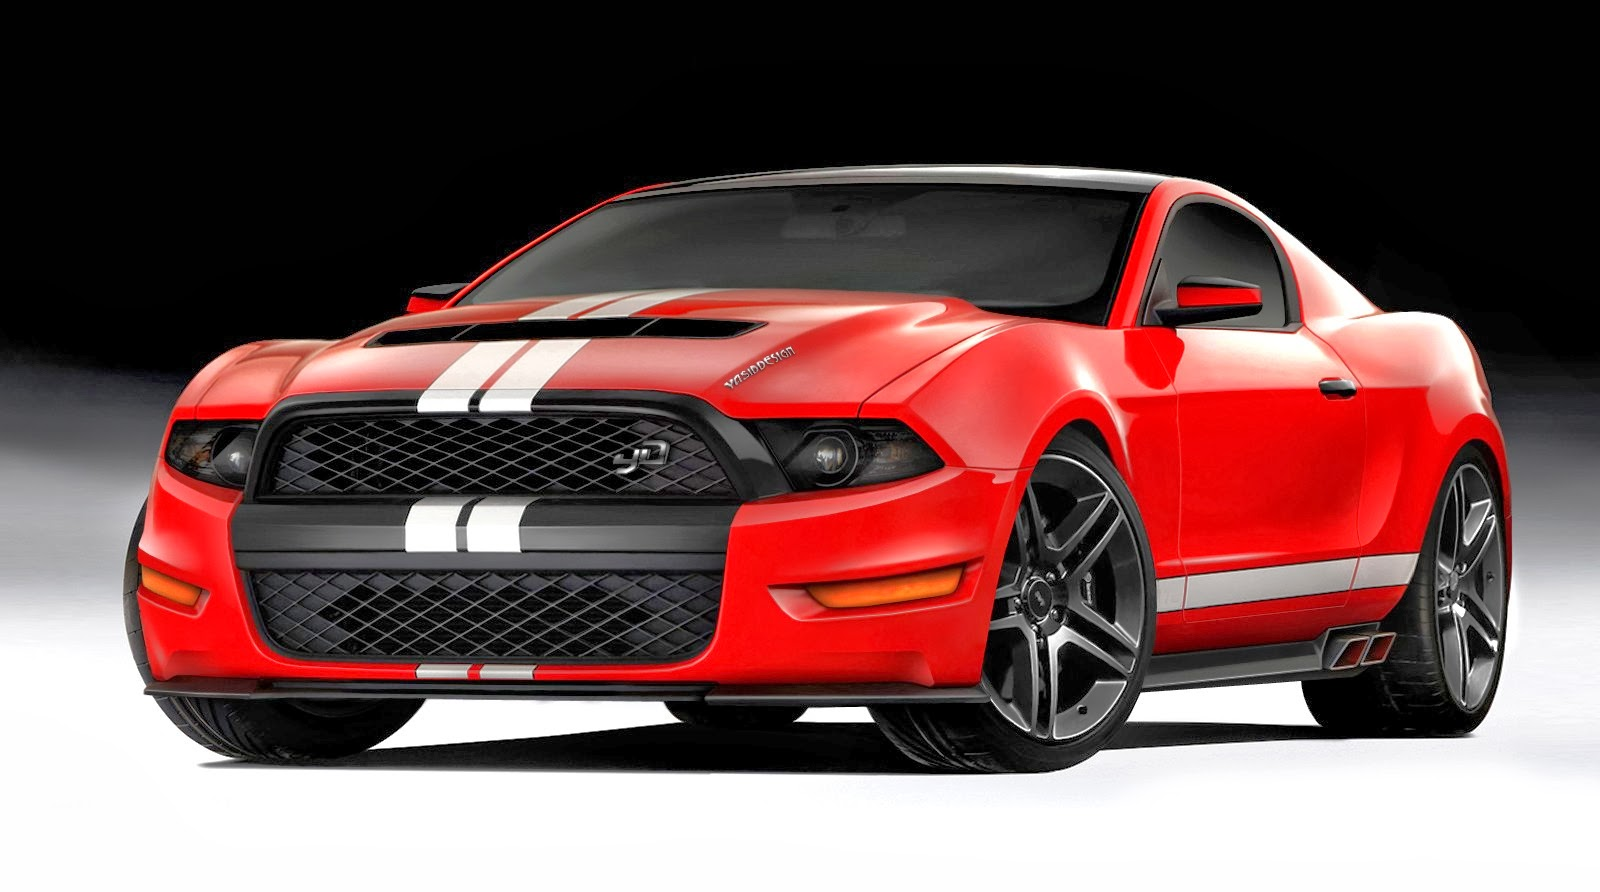 2000 Ford Mustang Shelby Gt500  Car Autos Gallery